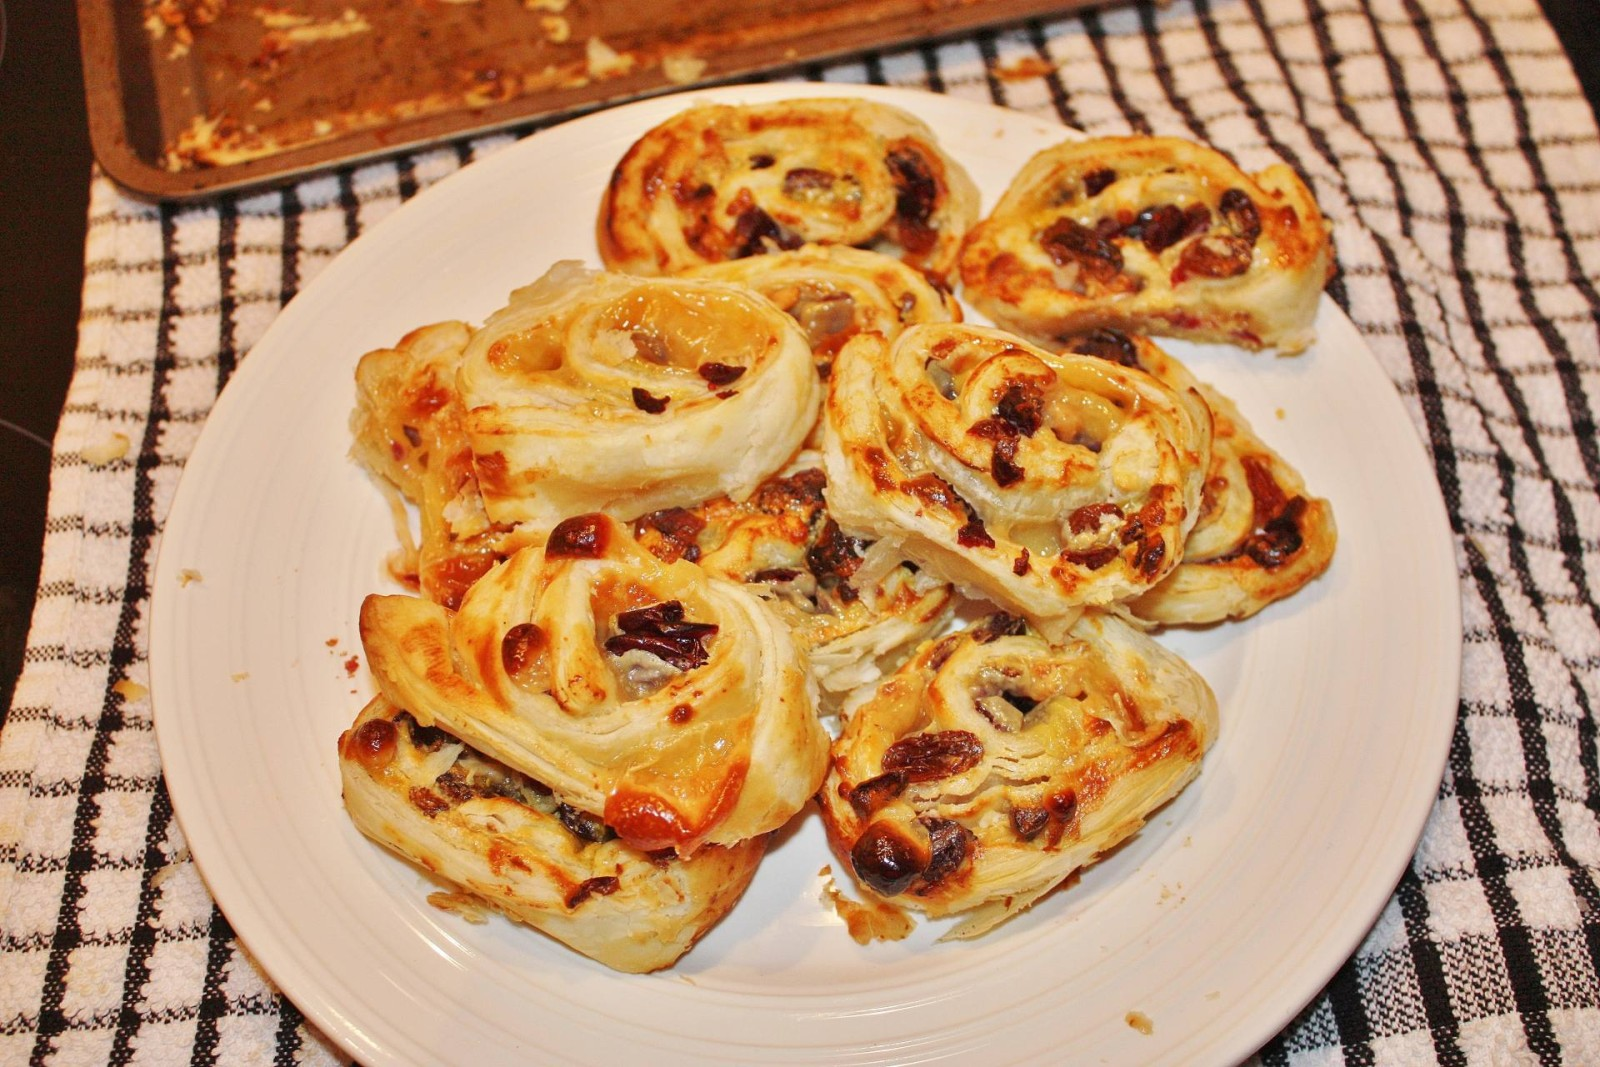 Brie and cranberry pinwheel14